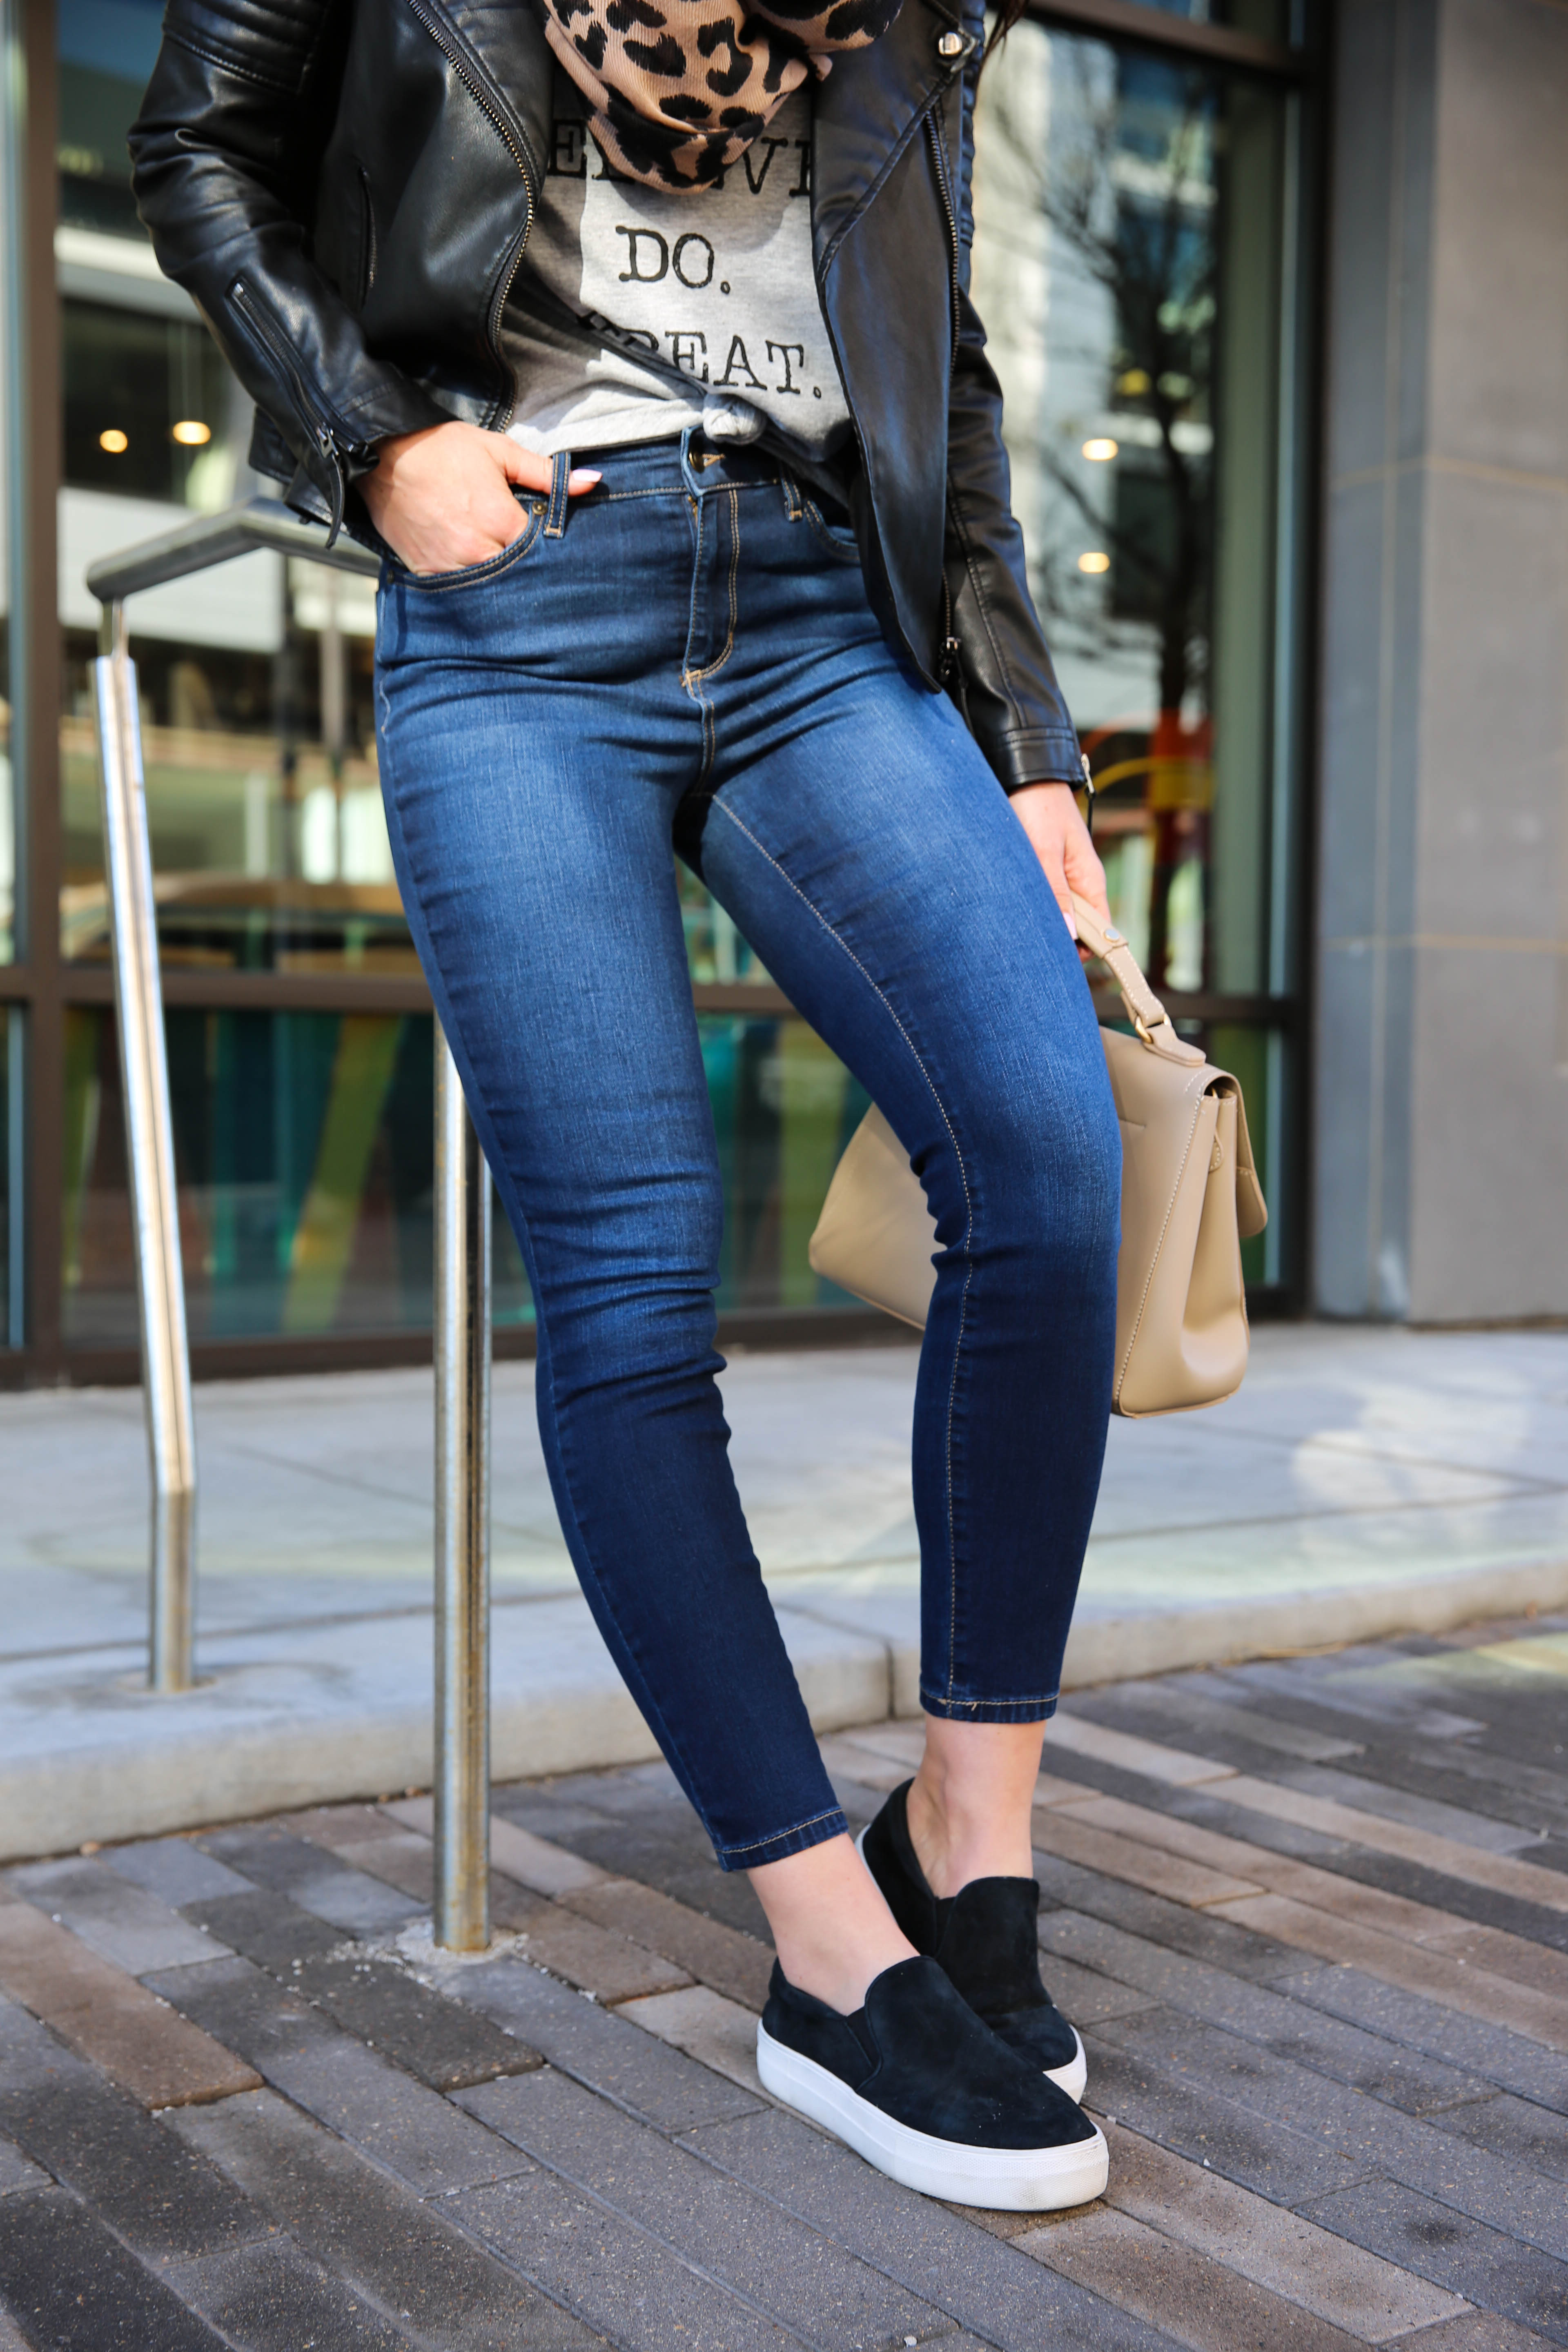 PaleOMG Comfortable Jeans for Every Size & Budget